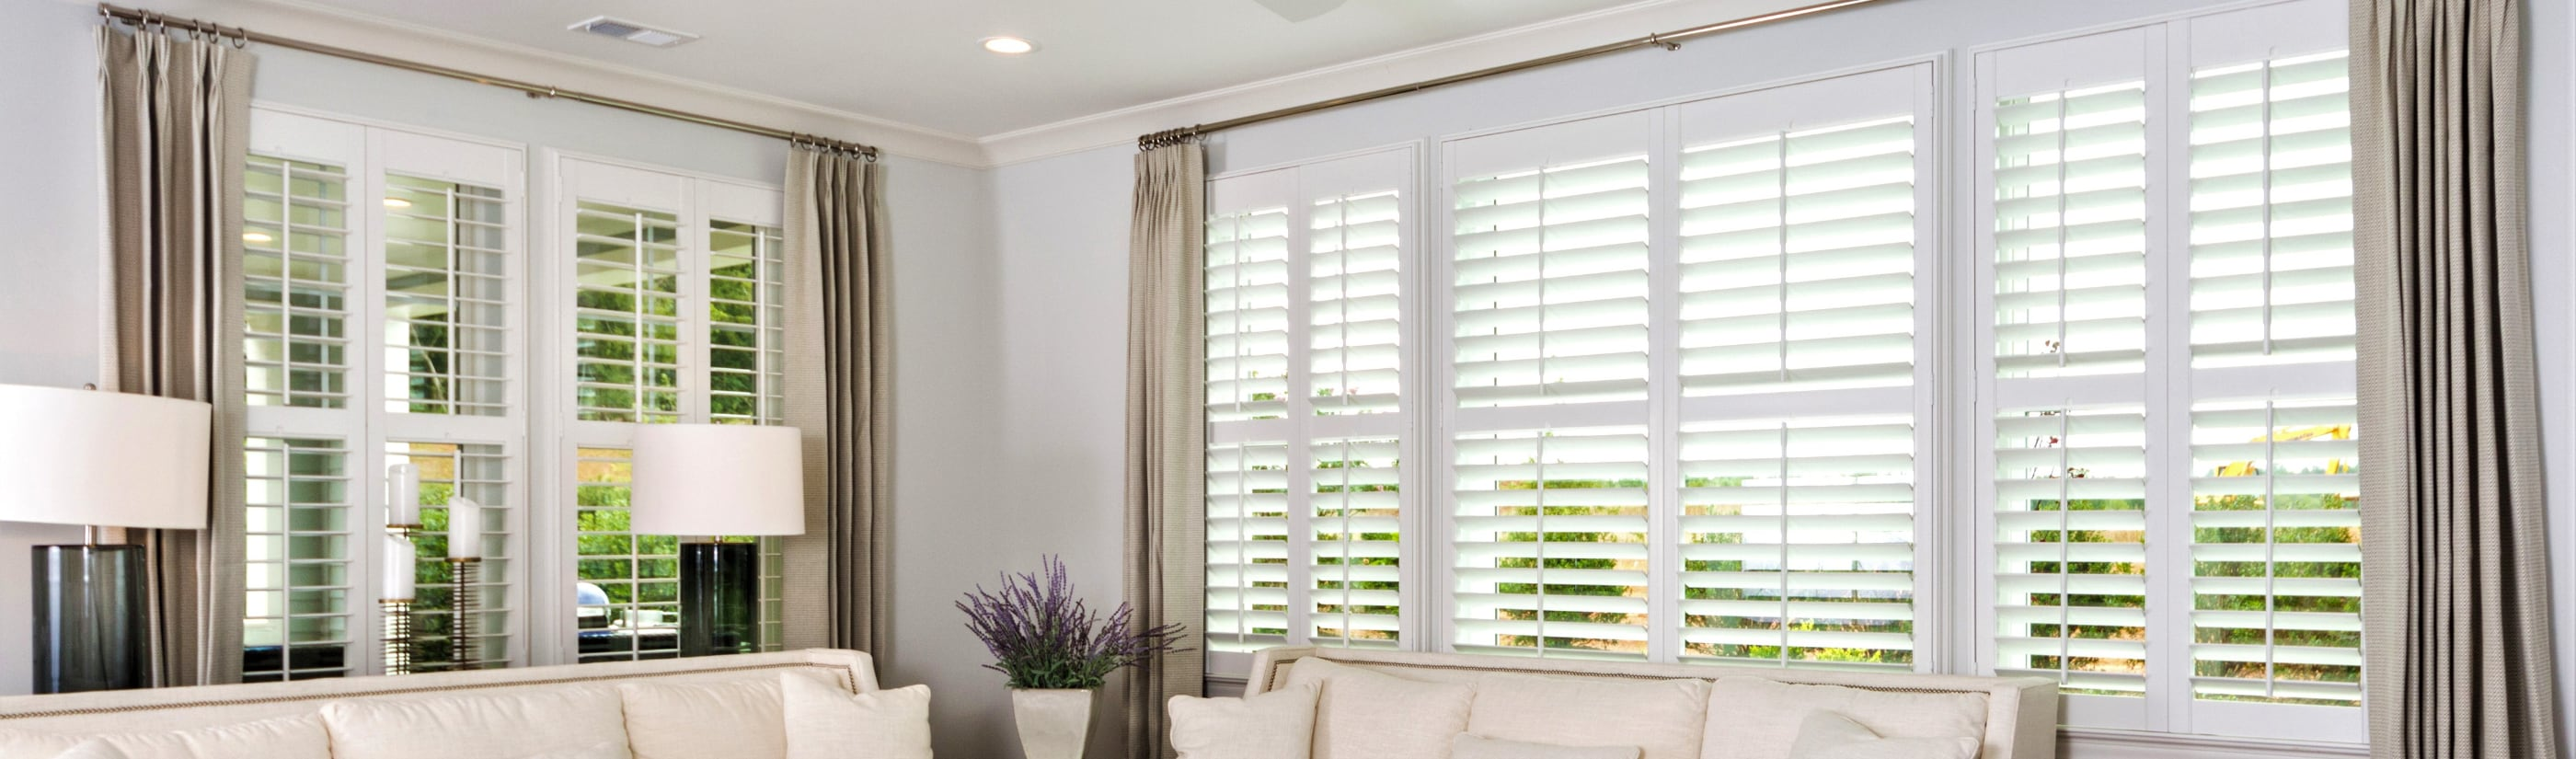 Polywood Shutters Paints In Raleigh